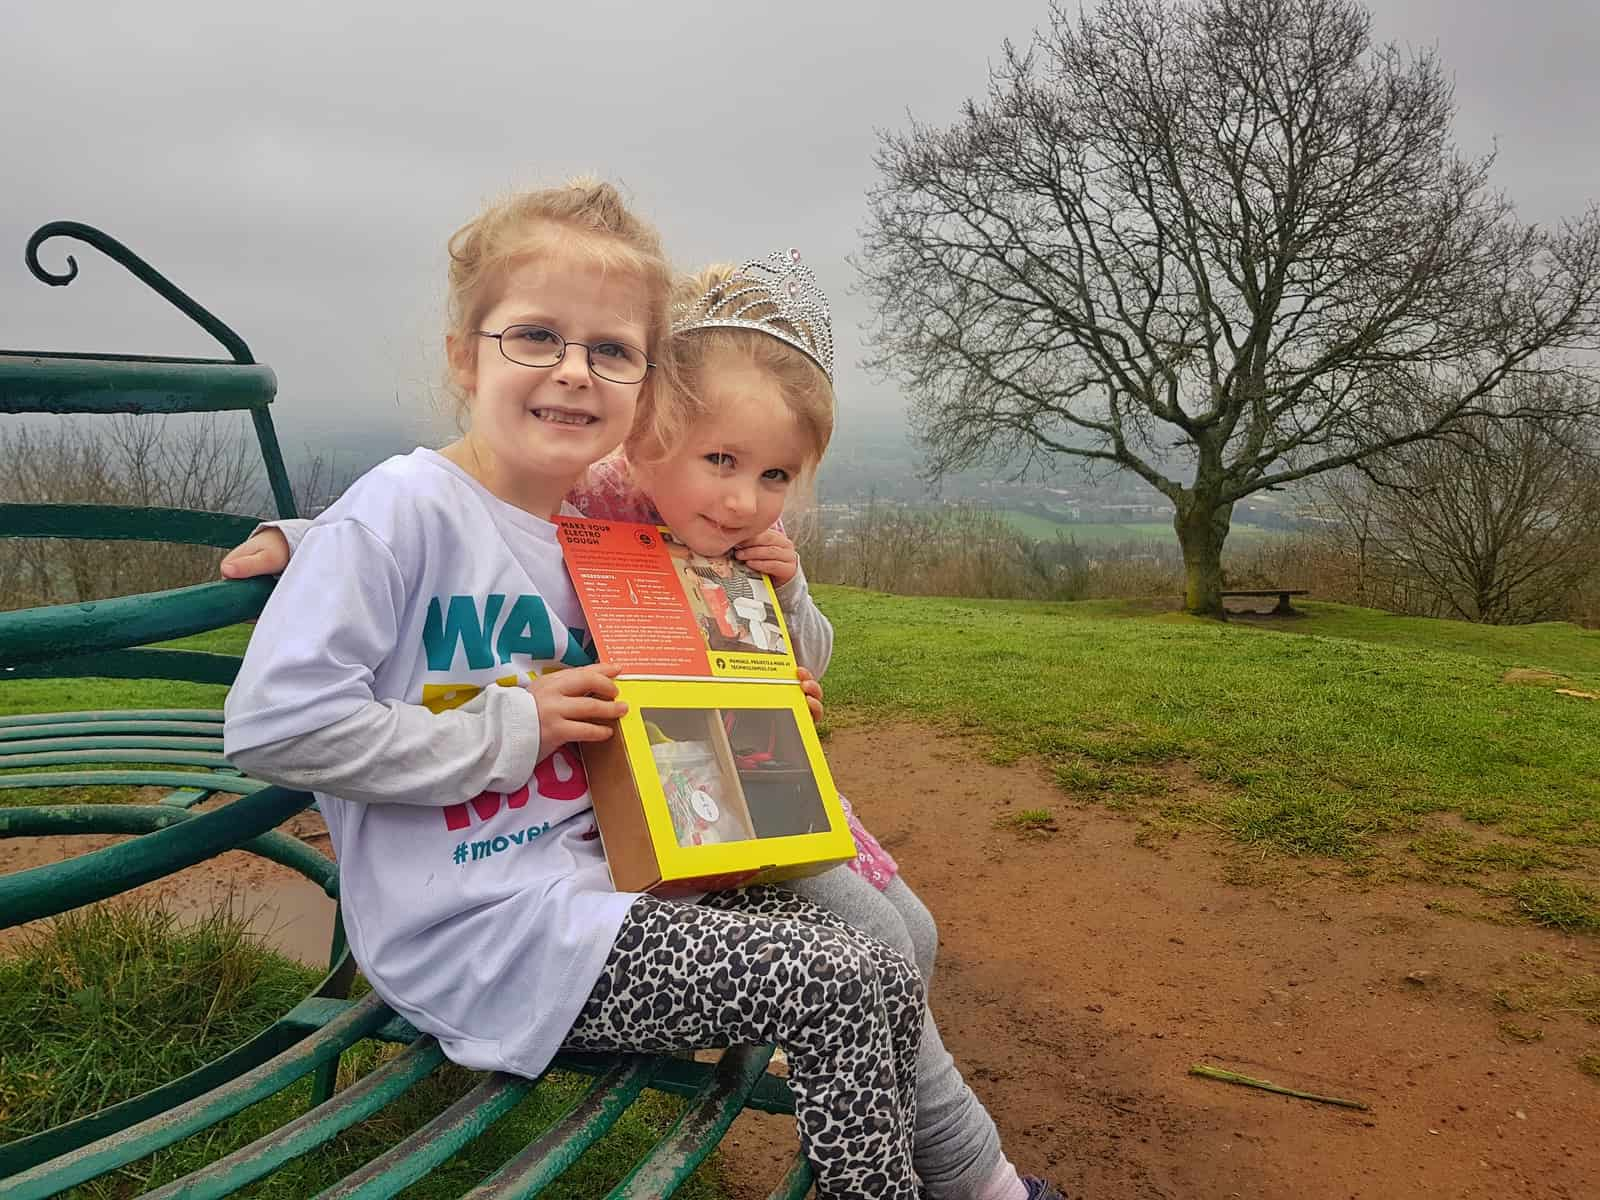 Two little girls sat on a bench holding an Electro Dough STEM science kit